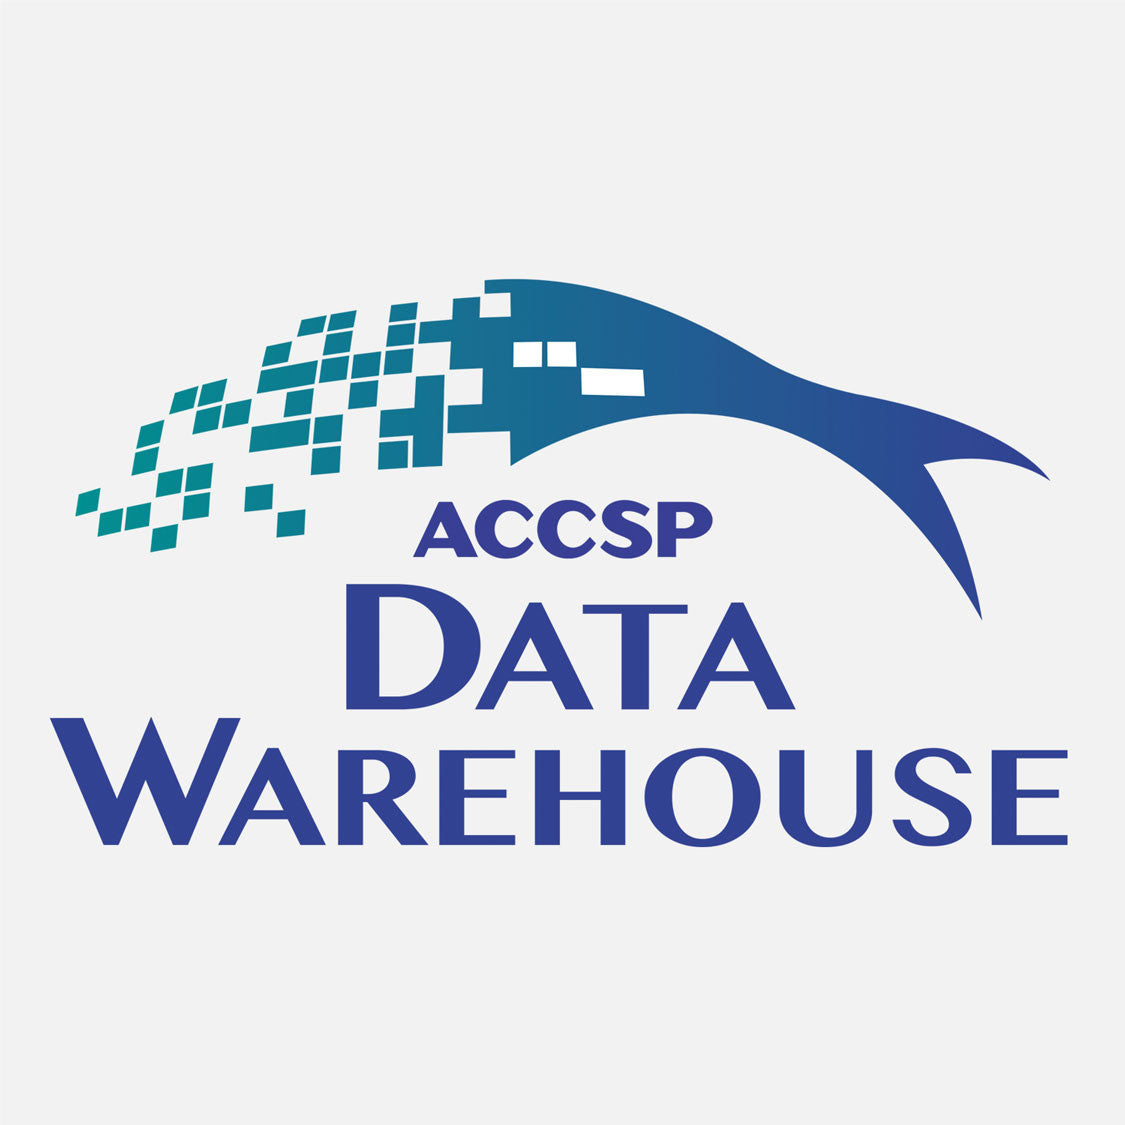 An online database populated with Atlantic coast fishery-dependent data supplied by the Atlantic Coast Cooperative Statistics Program (ACCSP) 23 program partners. The logo is a graphic of a fish being formed by pixels.